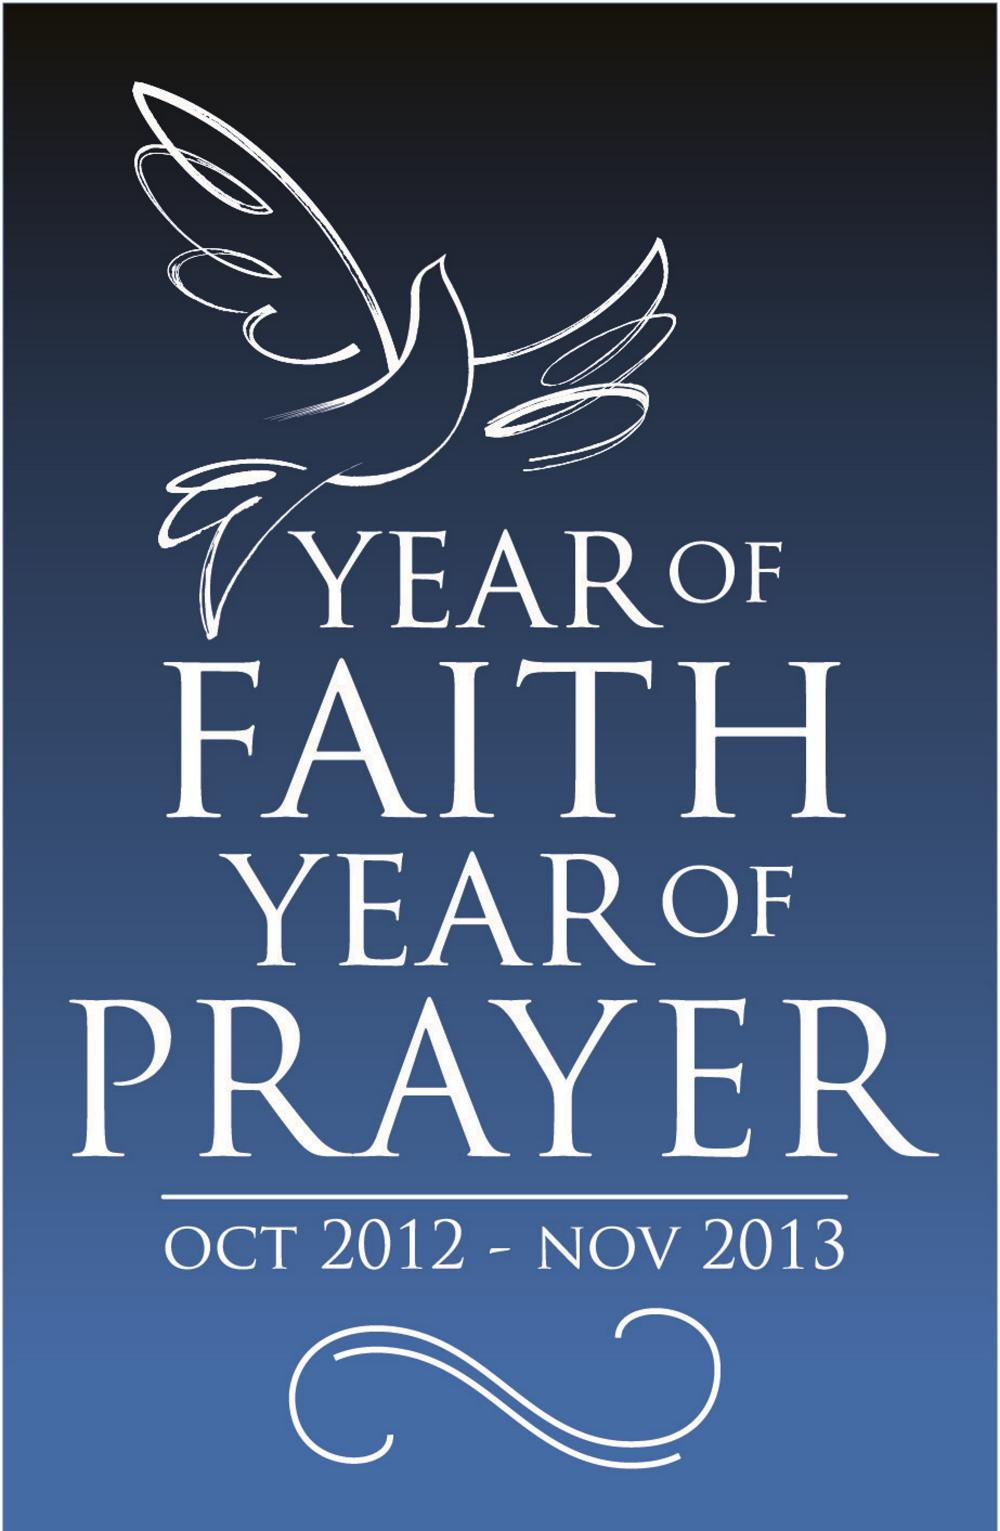 A year of faith, a year of prayer